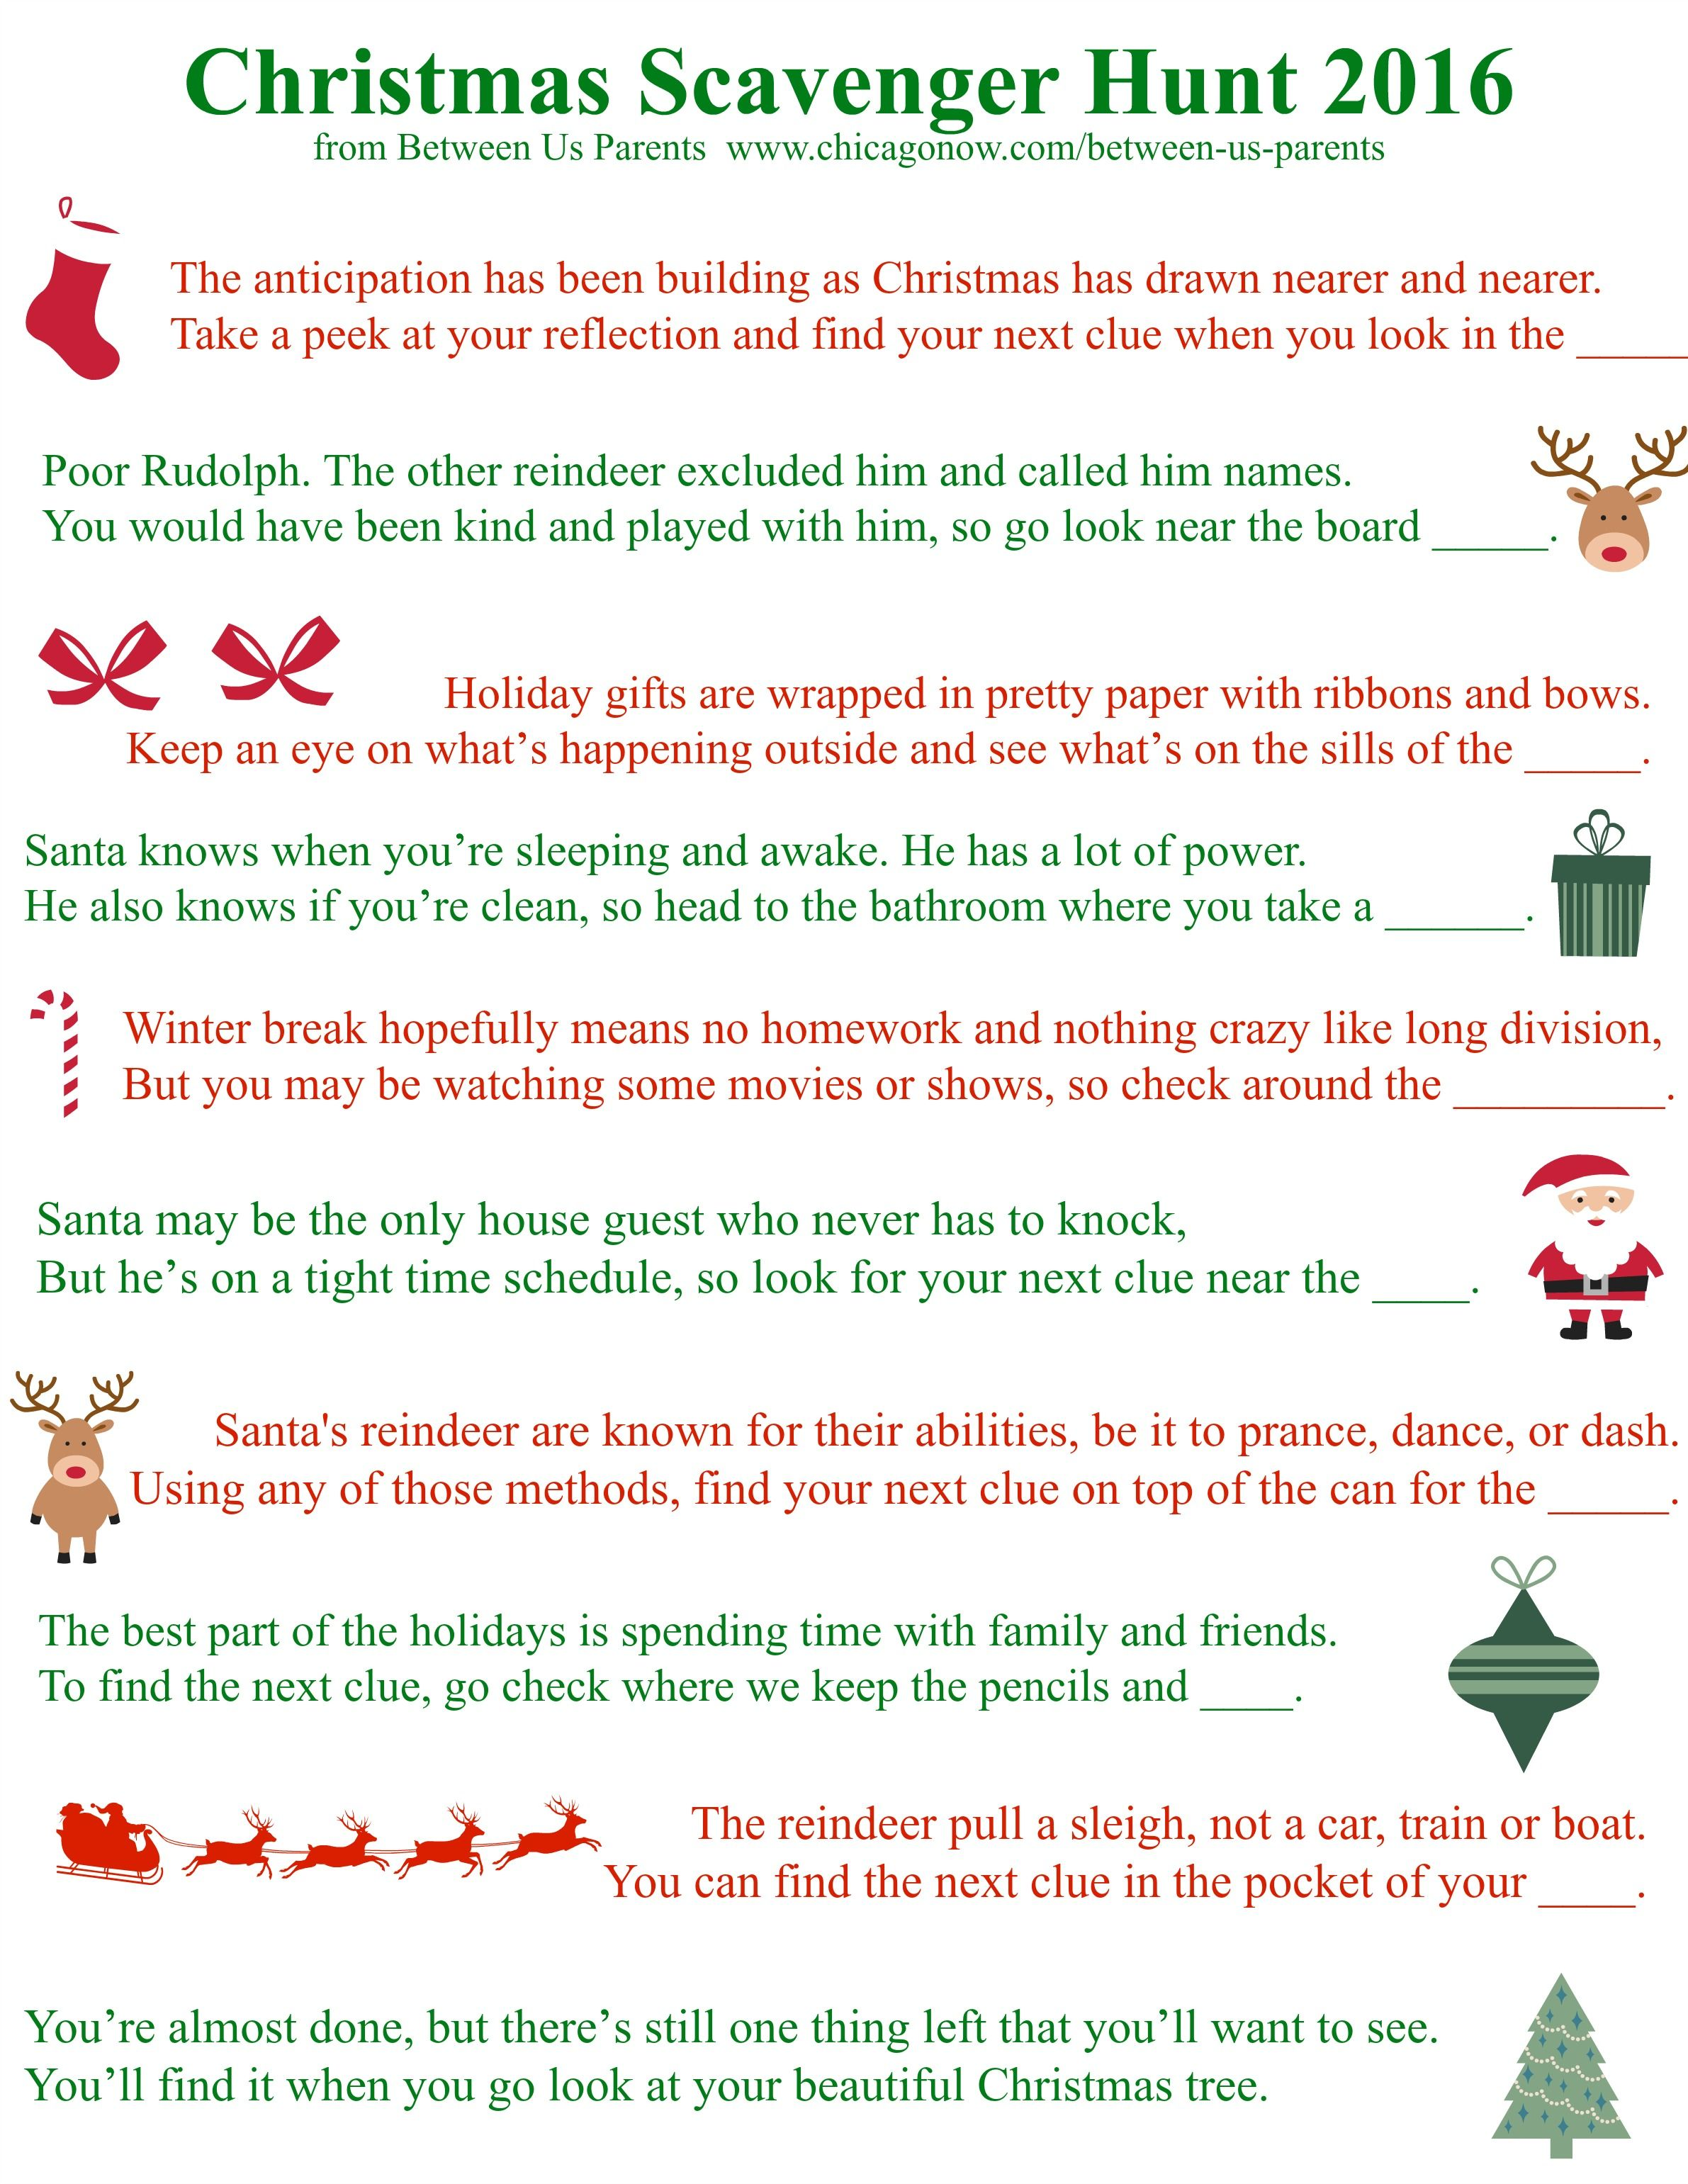 Printable Christmas Scavenger Hunt Clues Between Us Pas 2016